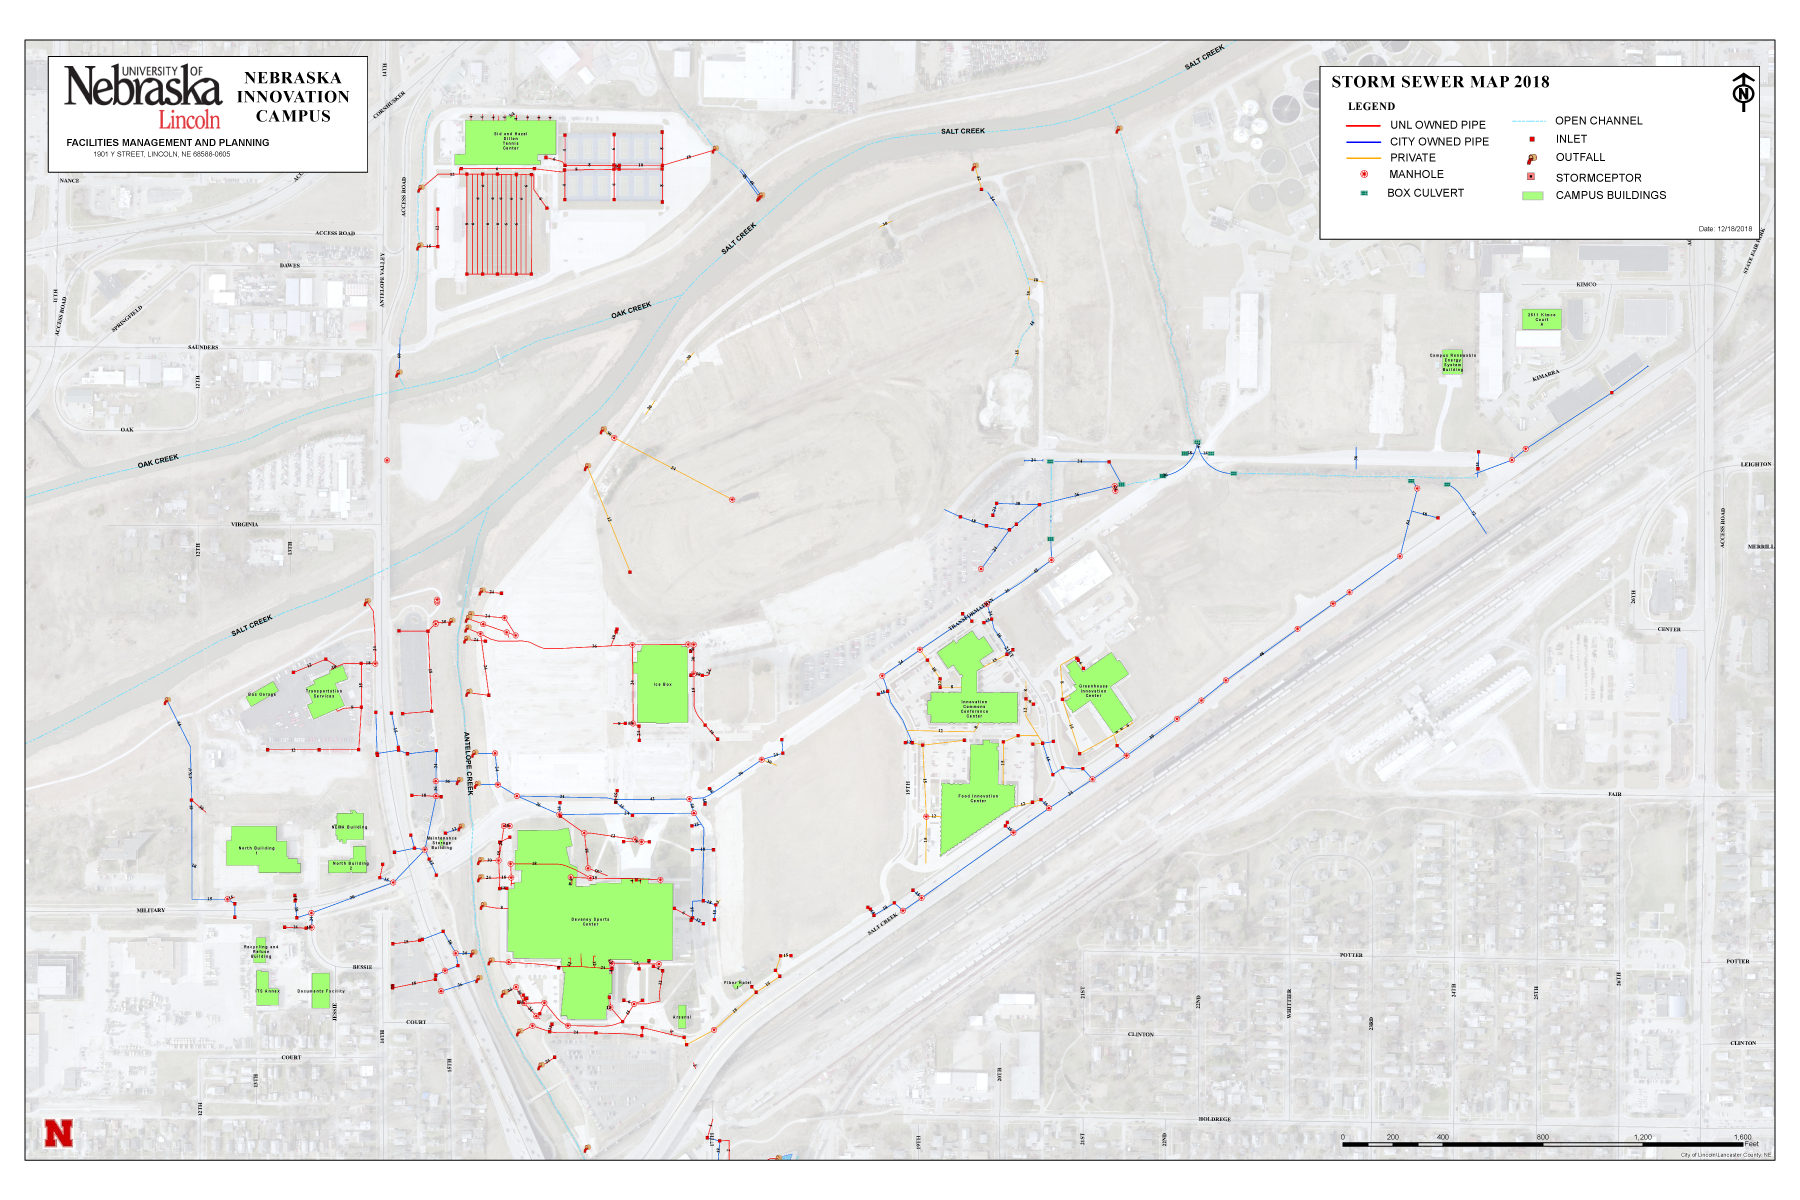 NIC Storm Sewer Map